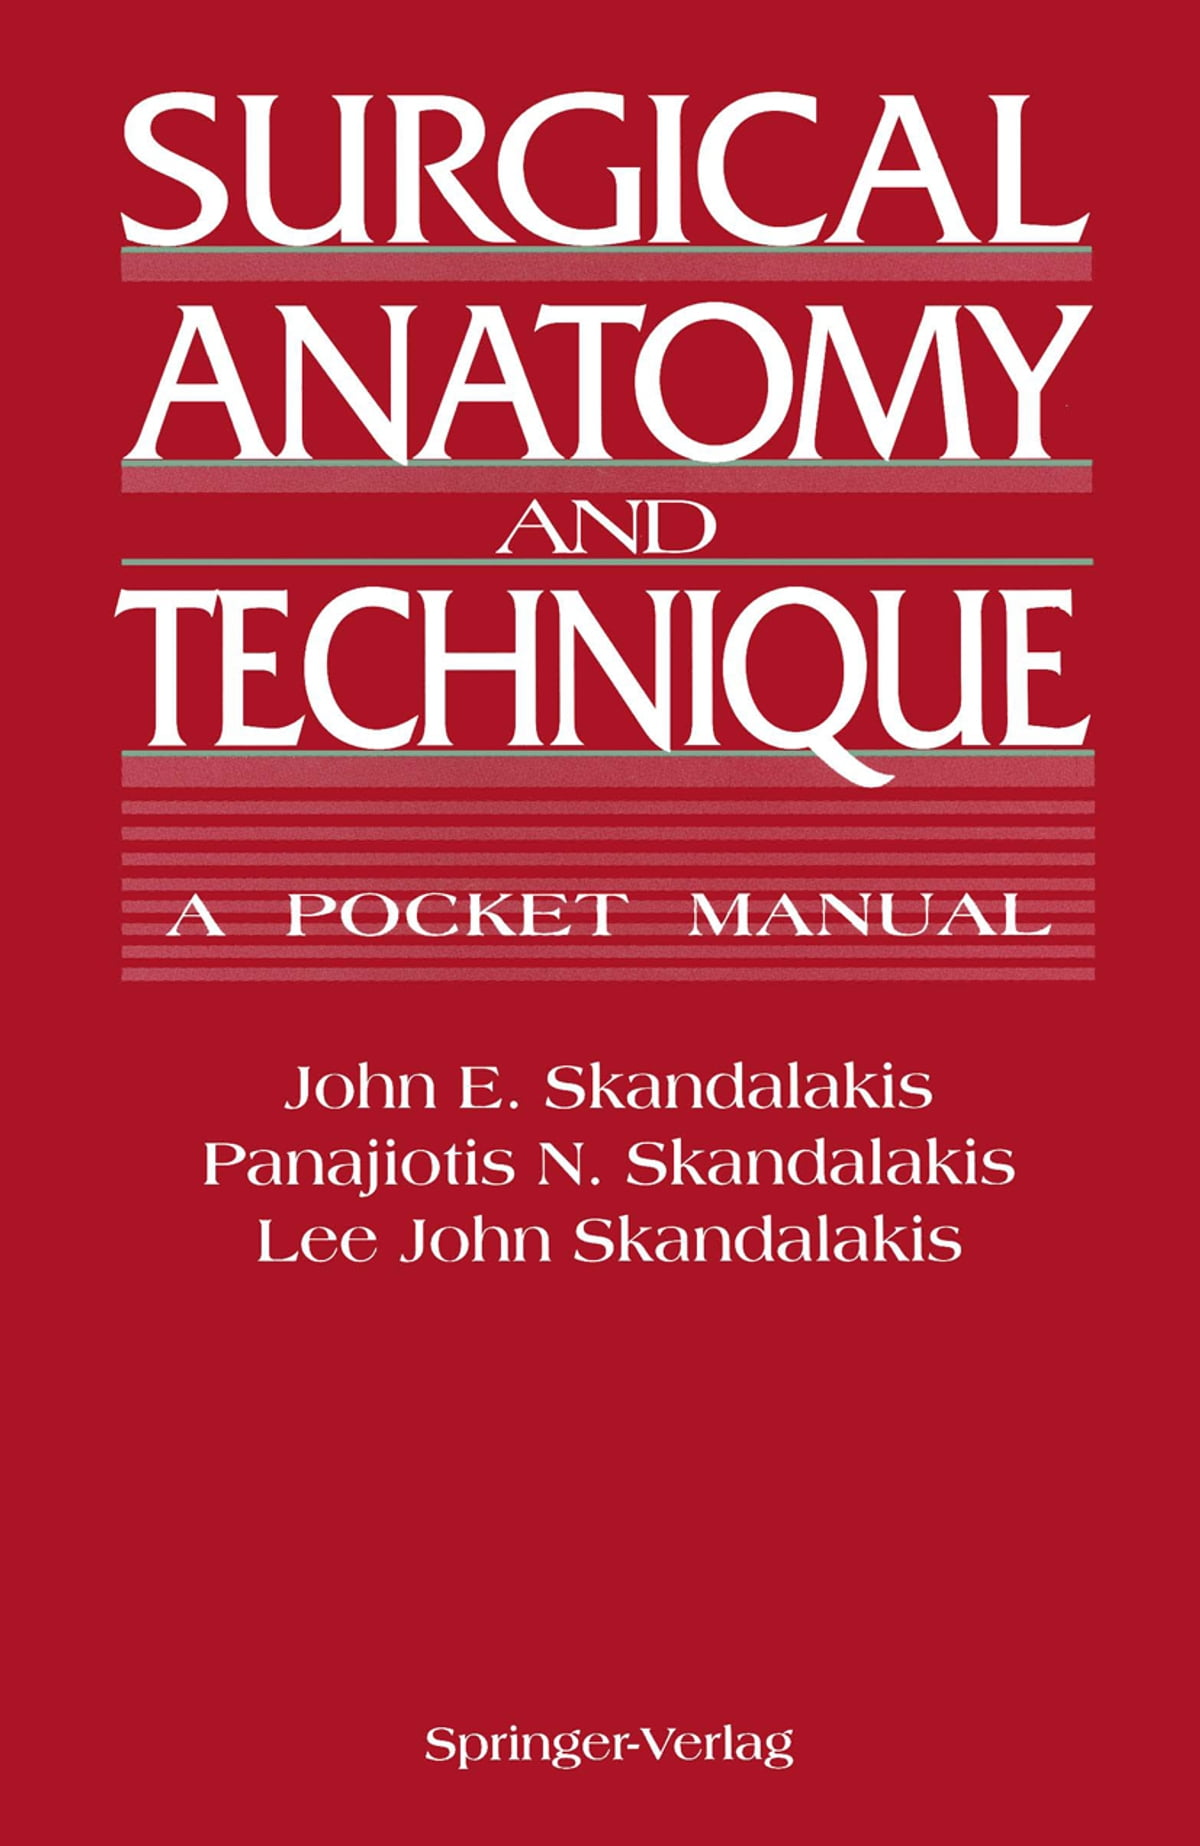 Surgical Anatomy And Technique Ebook By John E Skandalakis